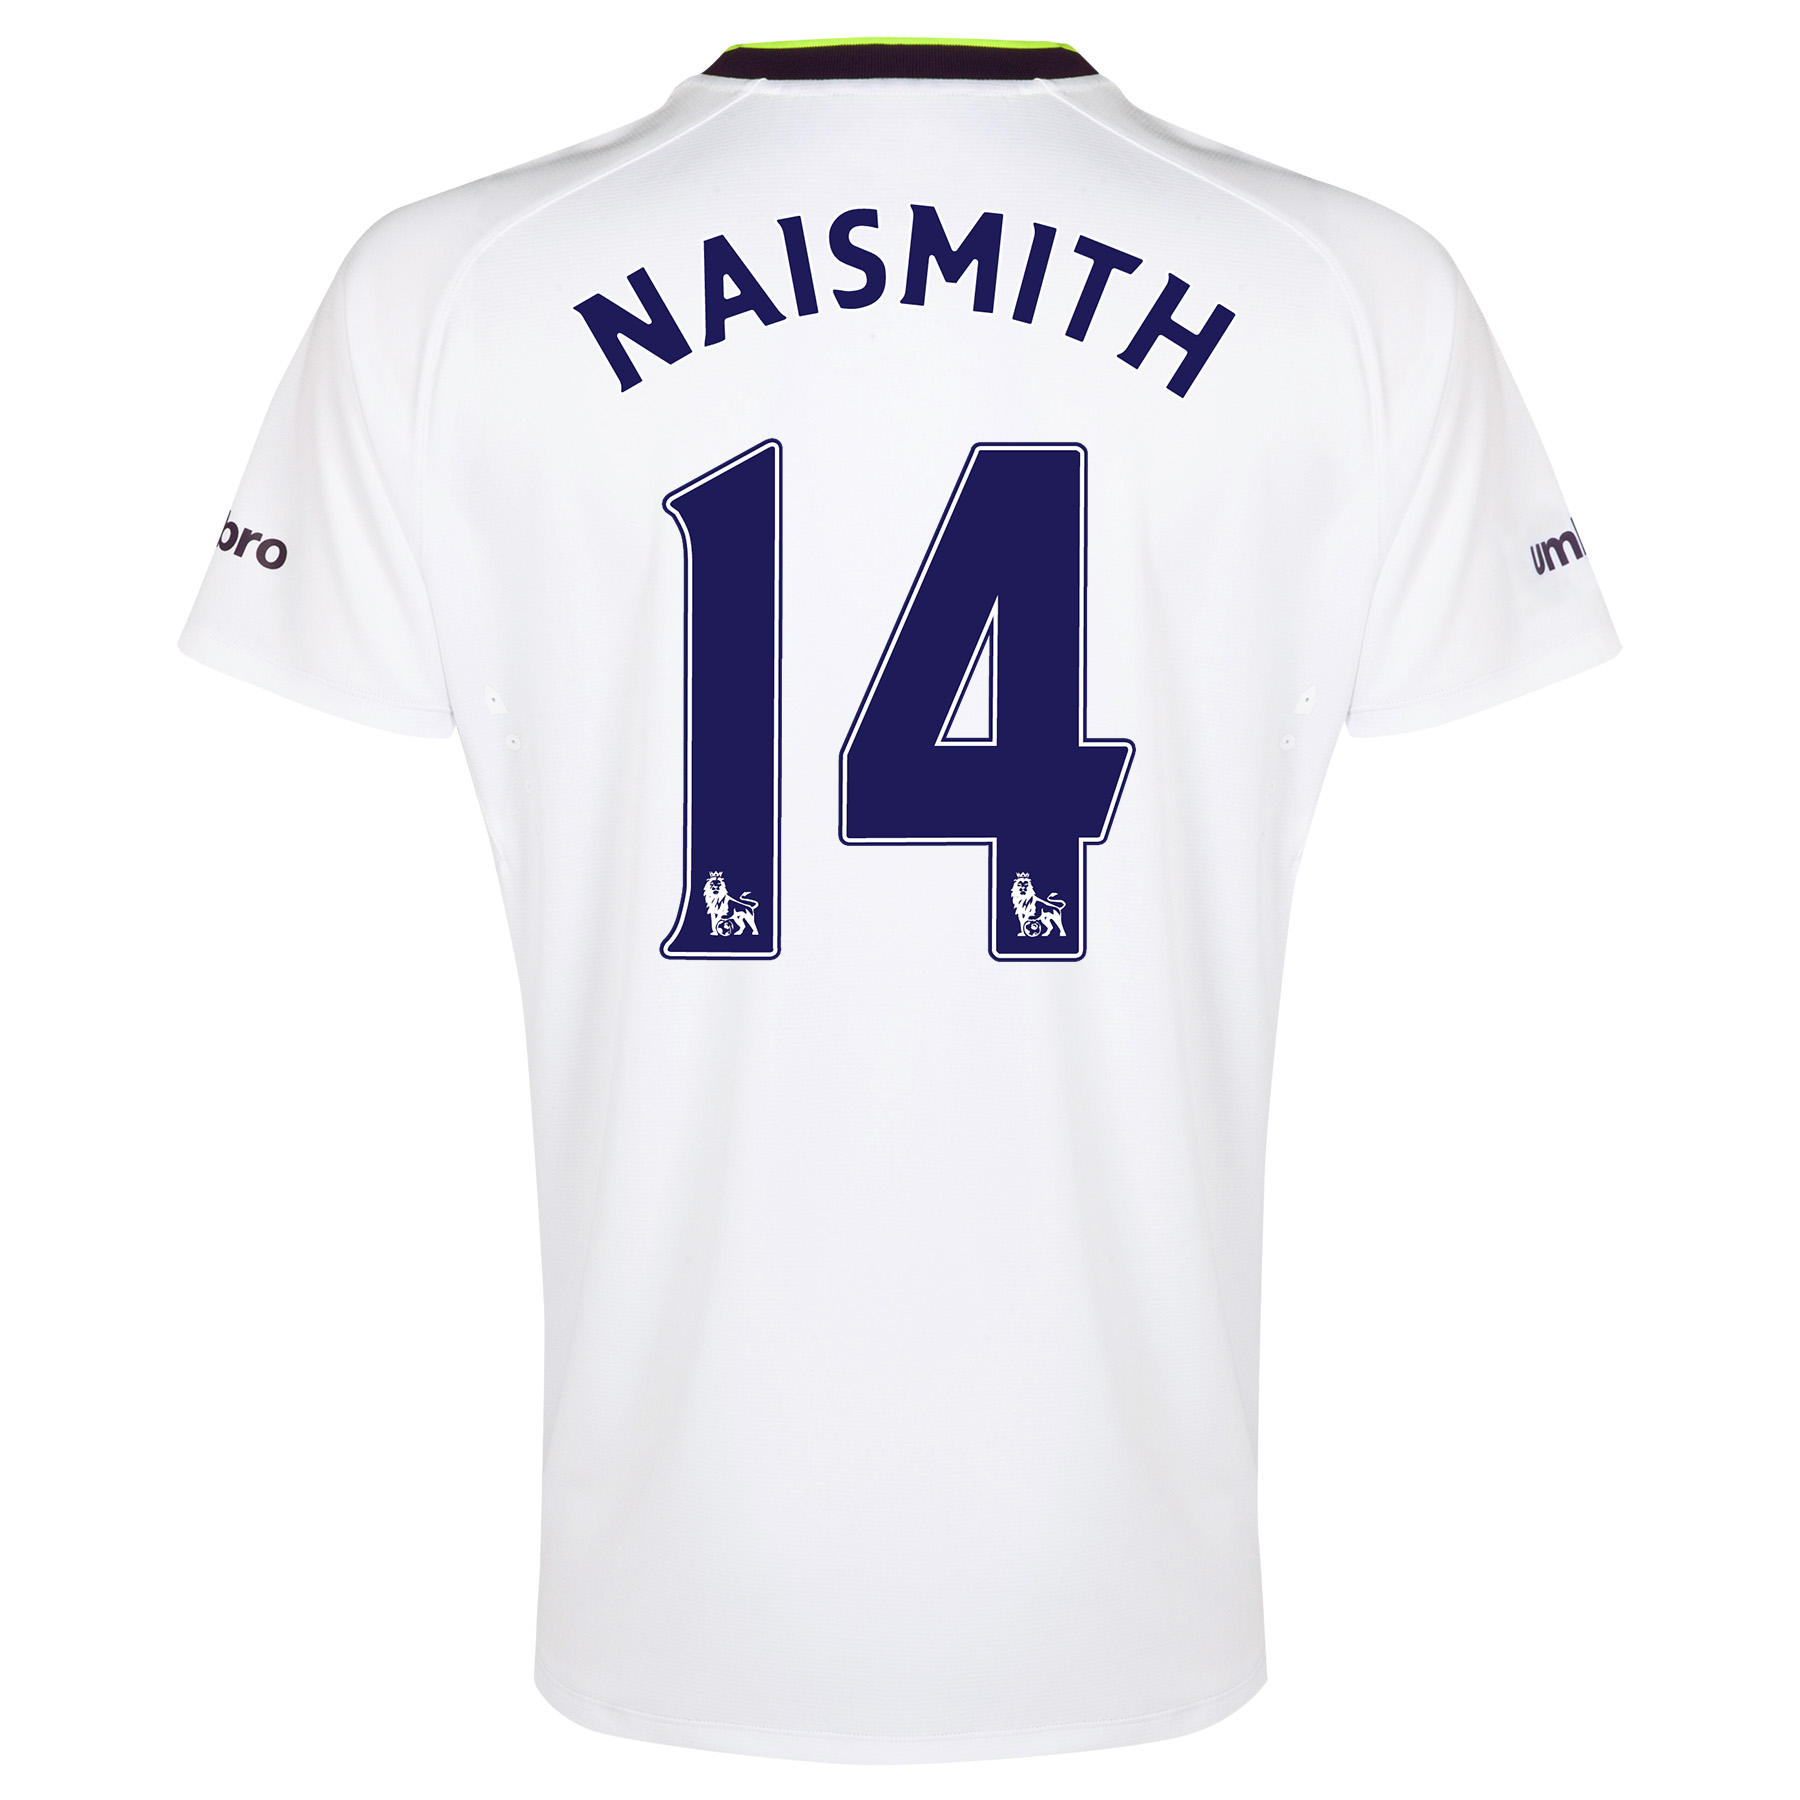 Everton SS 3rd Shirt  2014/15 with Naismith 14 printing